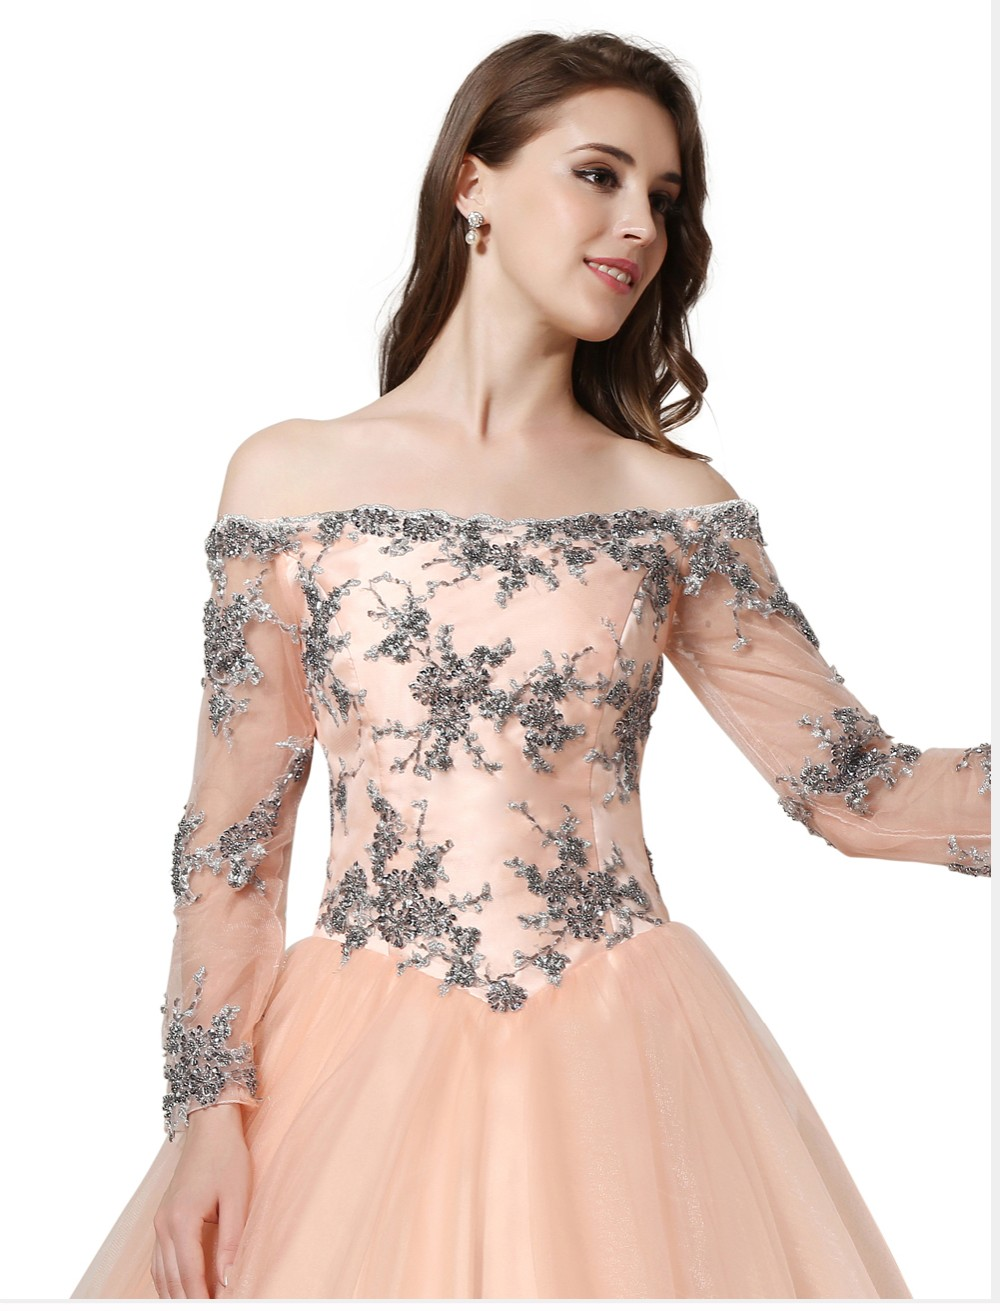 38960d758c164 Prom Dress 2018 SoDigne Vintage Tulle Peach Color Evening Dress Long Sleeve  Off The Shoulder Lace Up Party Gown Appliques Beads-in Prom Dresses from ...